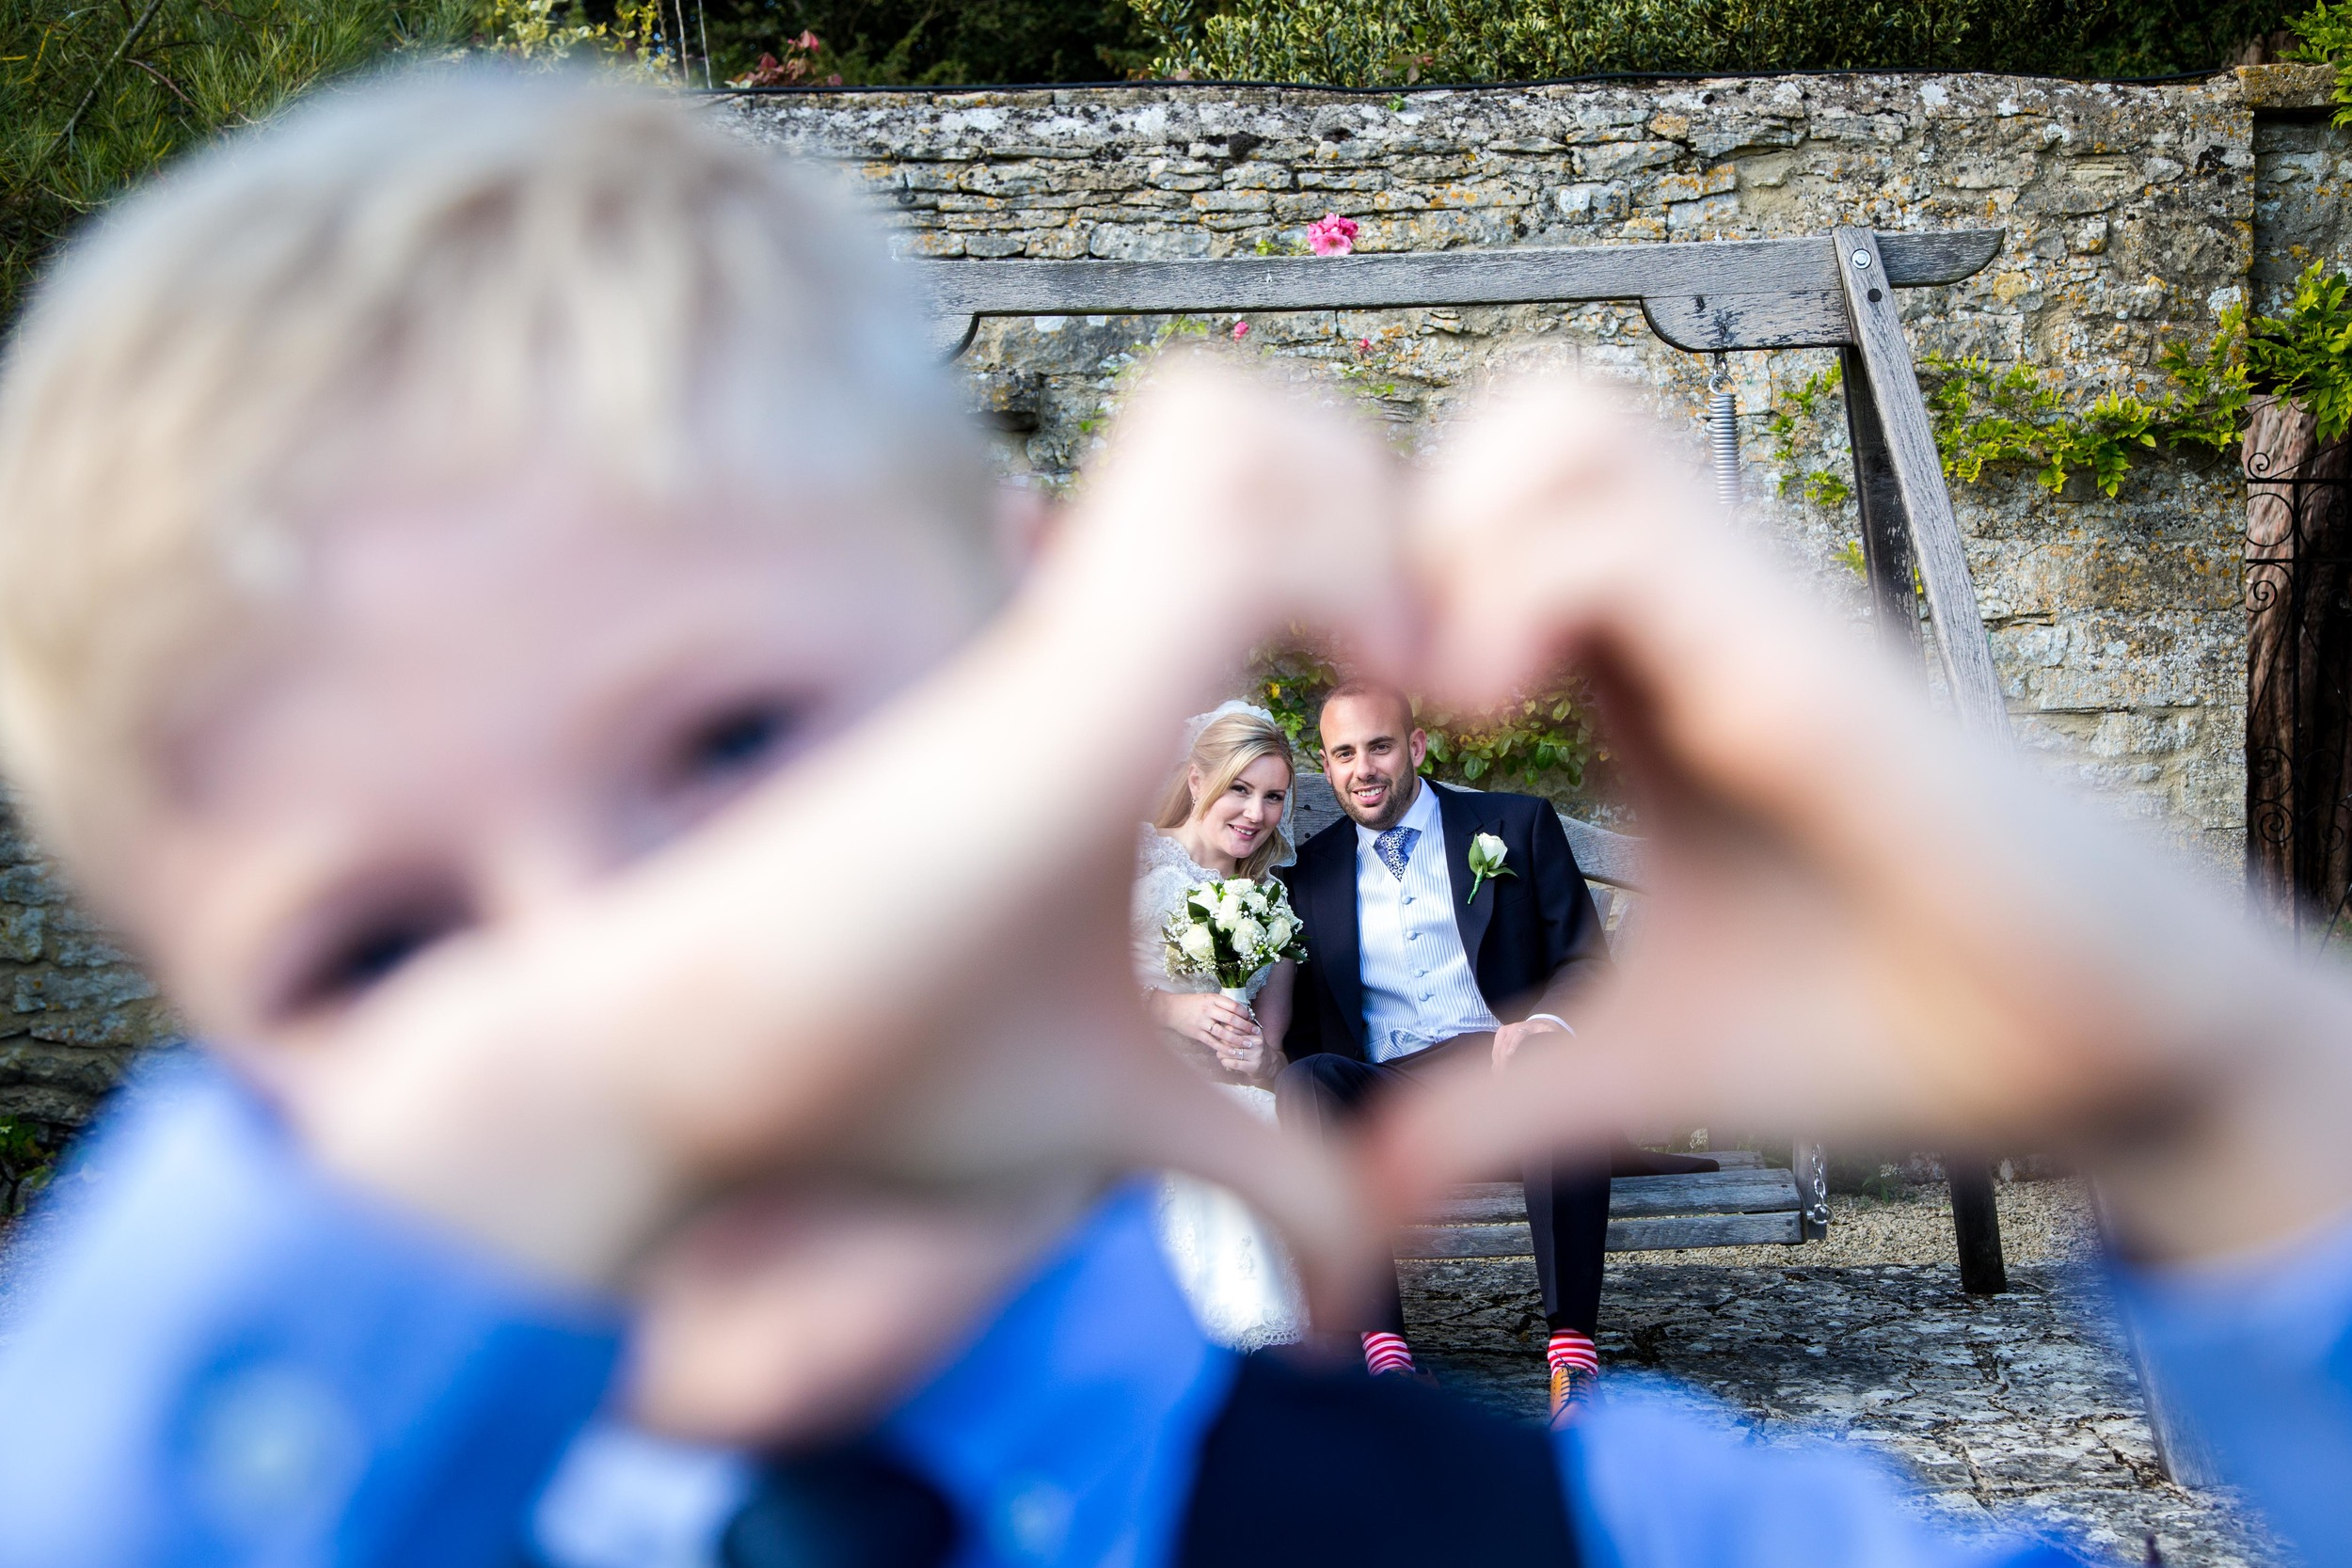 This image was going to go one of two ways and I'm very happy to say it went exactly as I hoped it would for lovely Liam & Gemma on their wedding day on Saturday 26th September. I felt it important to incorporate their son Archie into some of the shots and this one I just loved! They got married at the stunning Caswell House in Oxfordshire which was one of my favourite venues of the year.